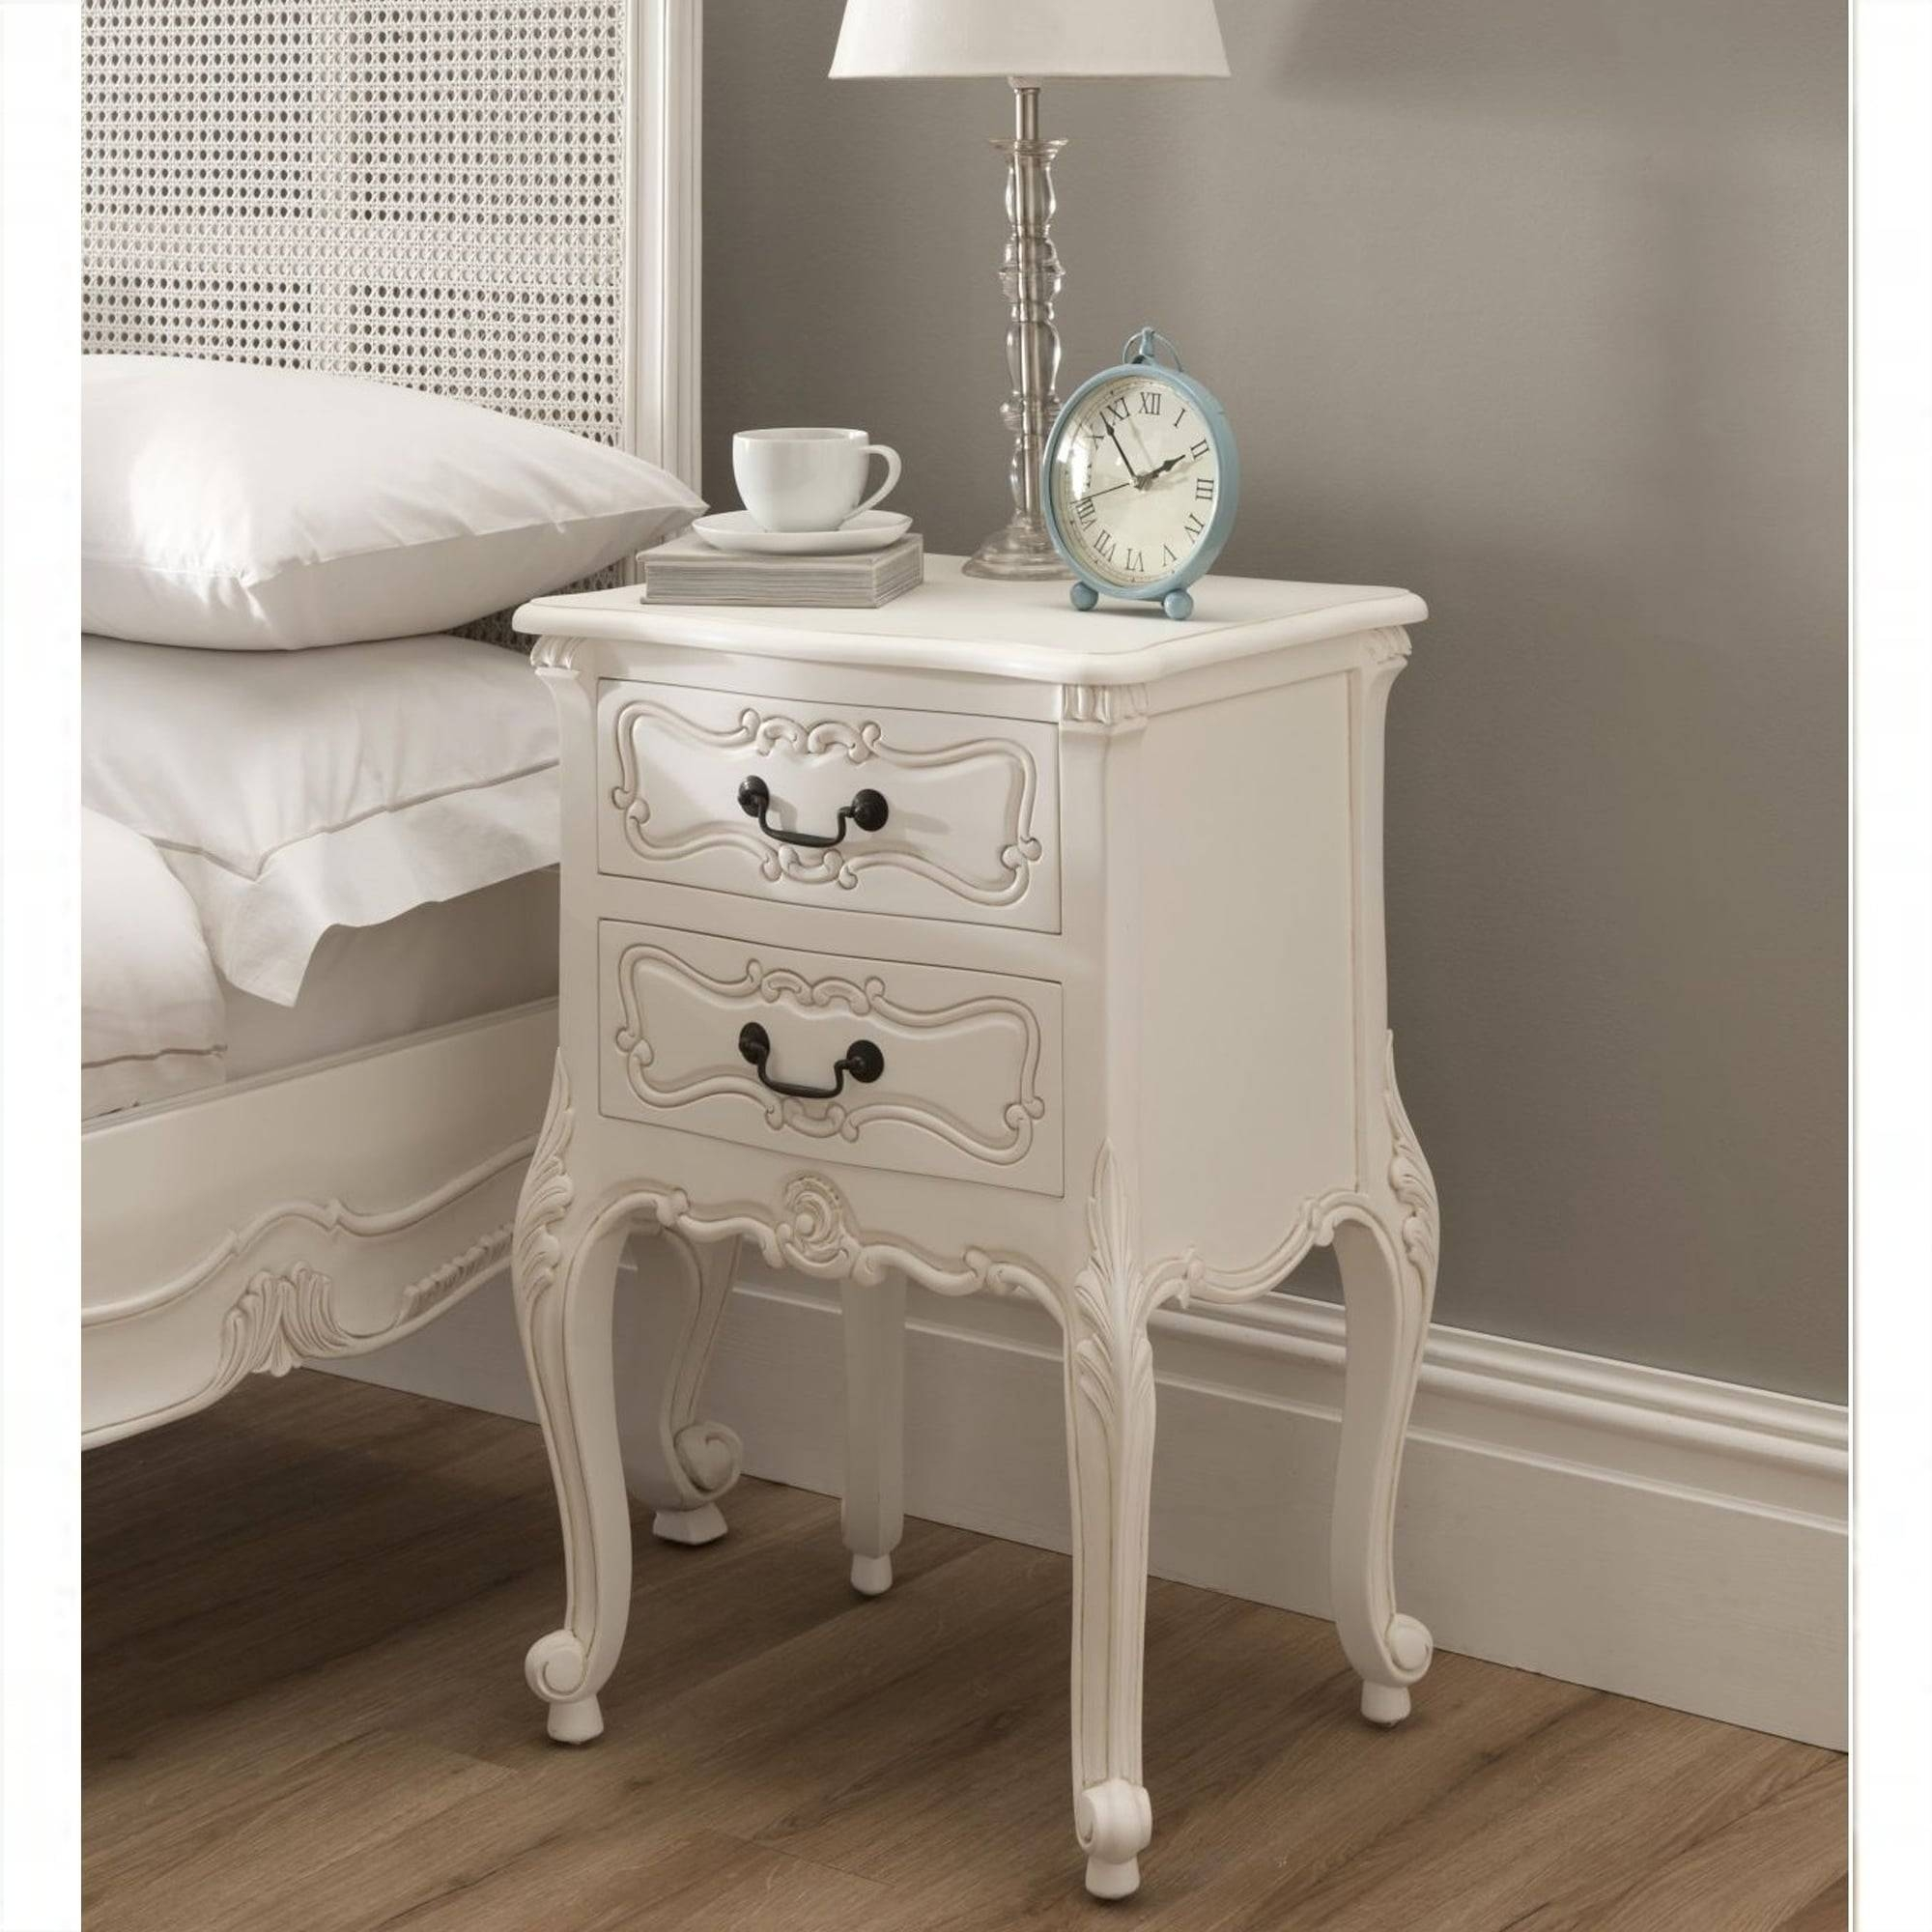 Shabby Chic Furniture Uk | French Furniture & Mirrored |Homesdirect365 within Cheap French Style Mirrors (Image 14 of 15)